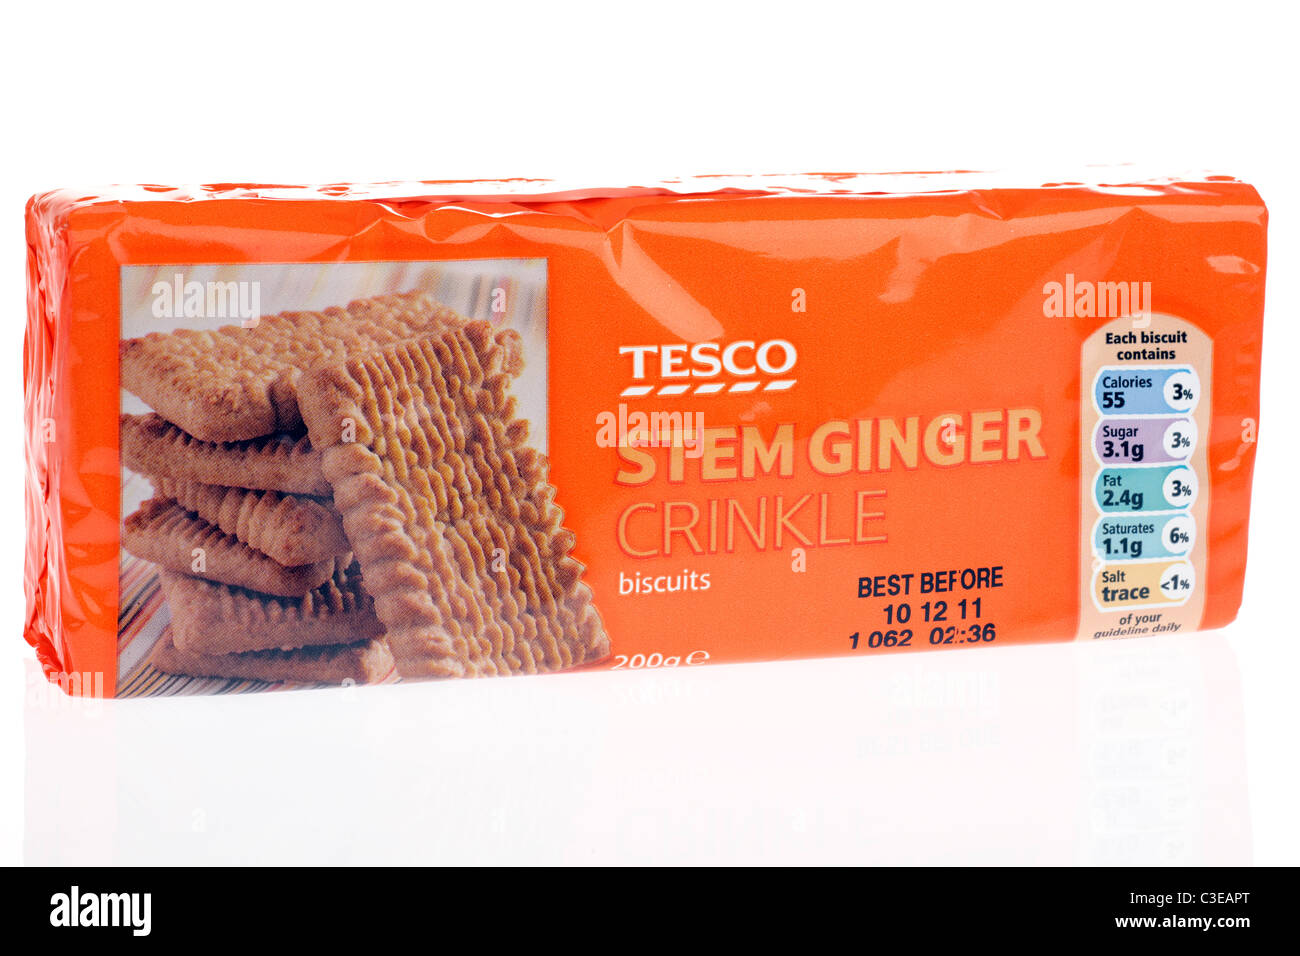 Packet of Tesco Stem ginger crinkle biscuits - Stock Image